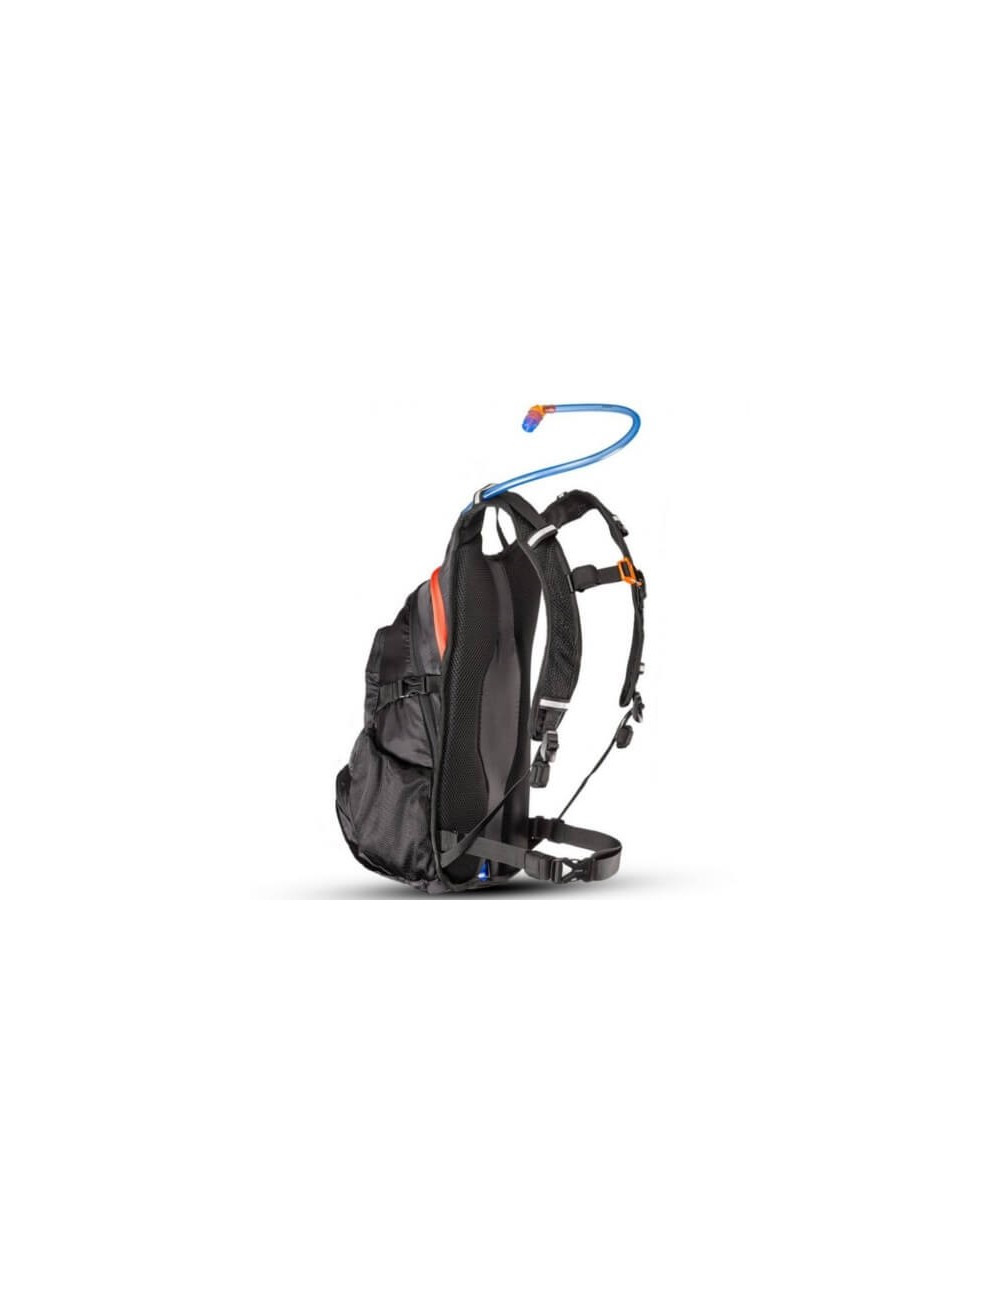 Source hydration pack Fuse 3 + 9 liter rugzak - Oranje- Geel